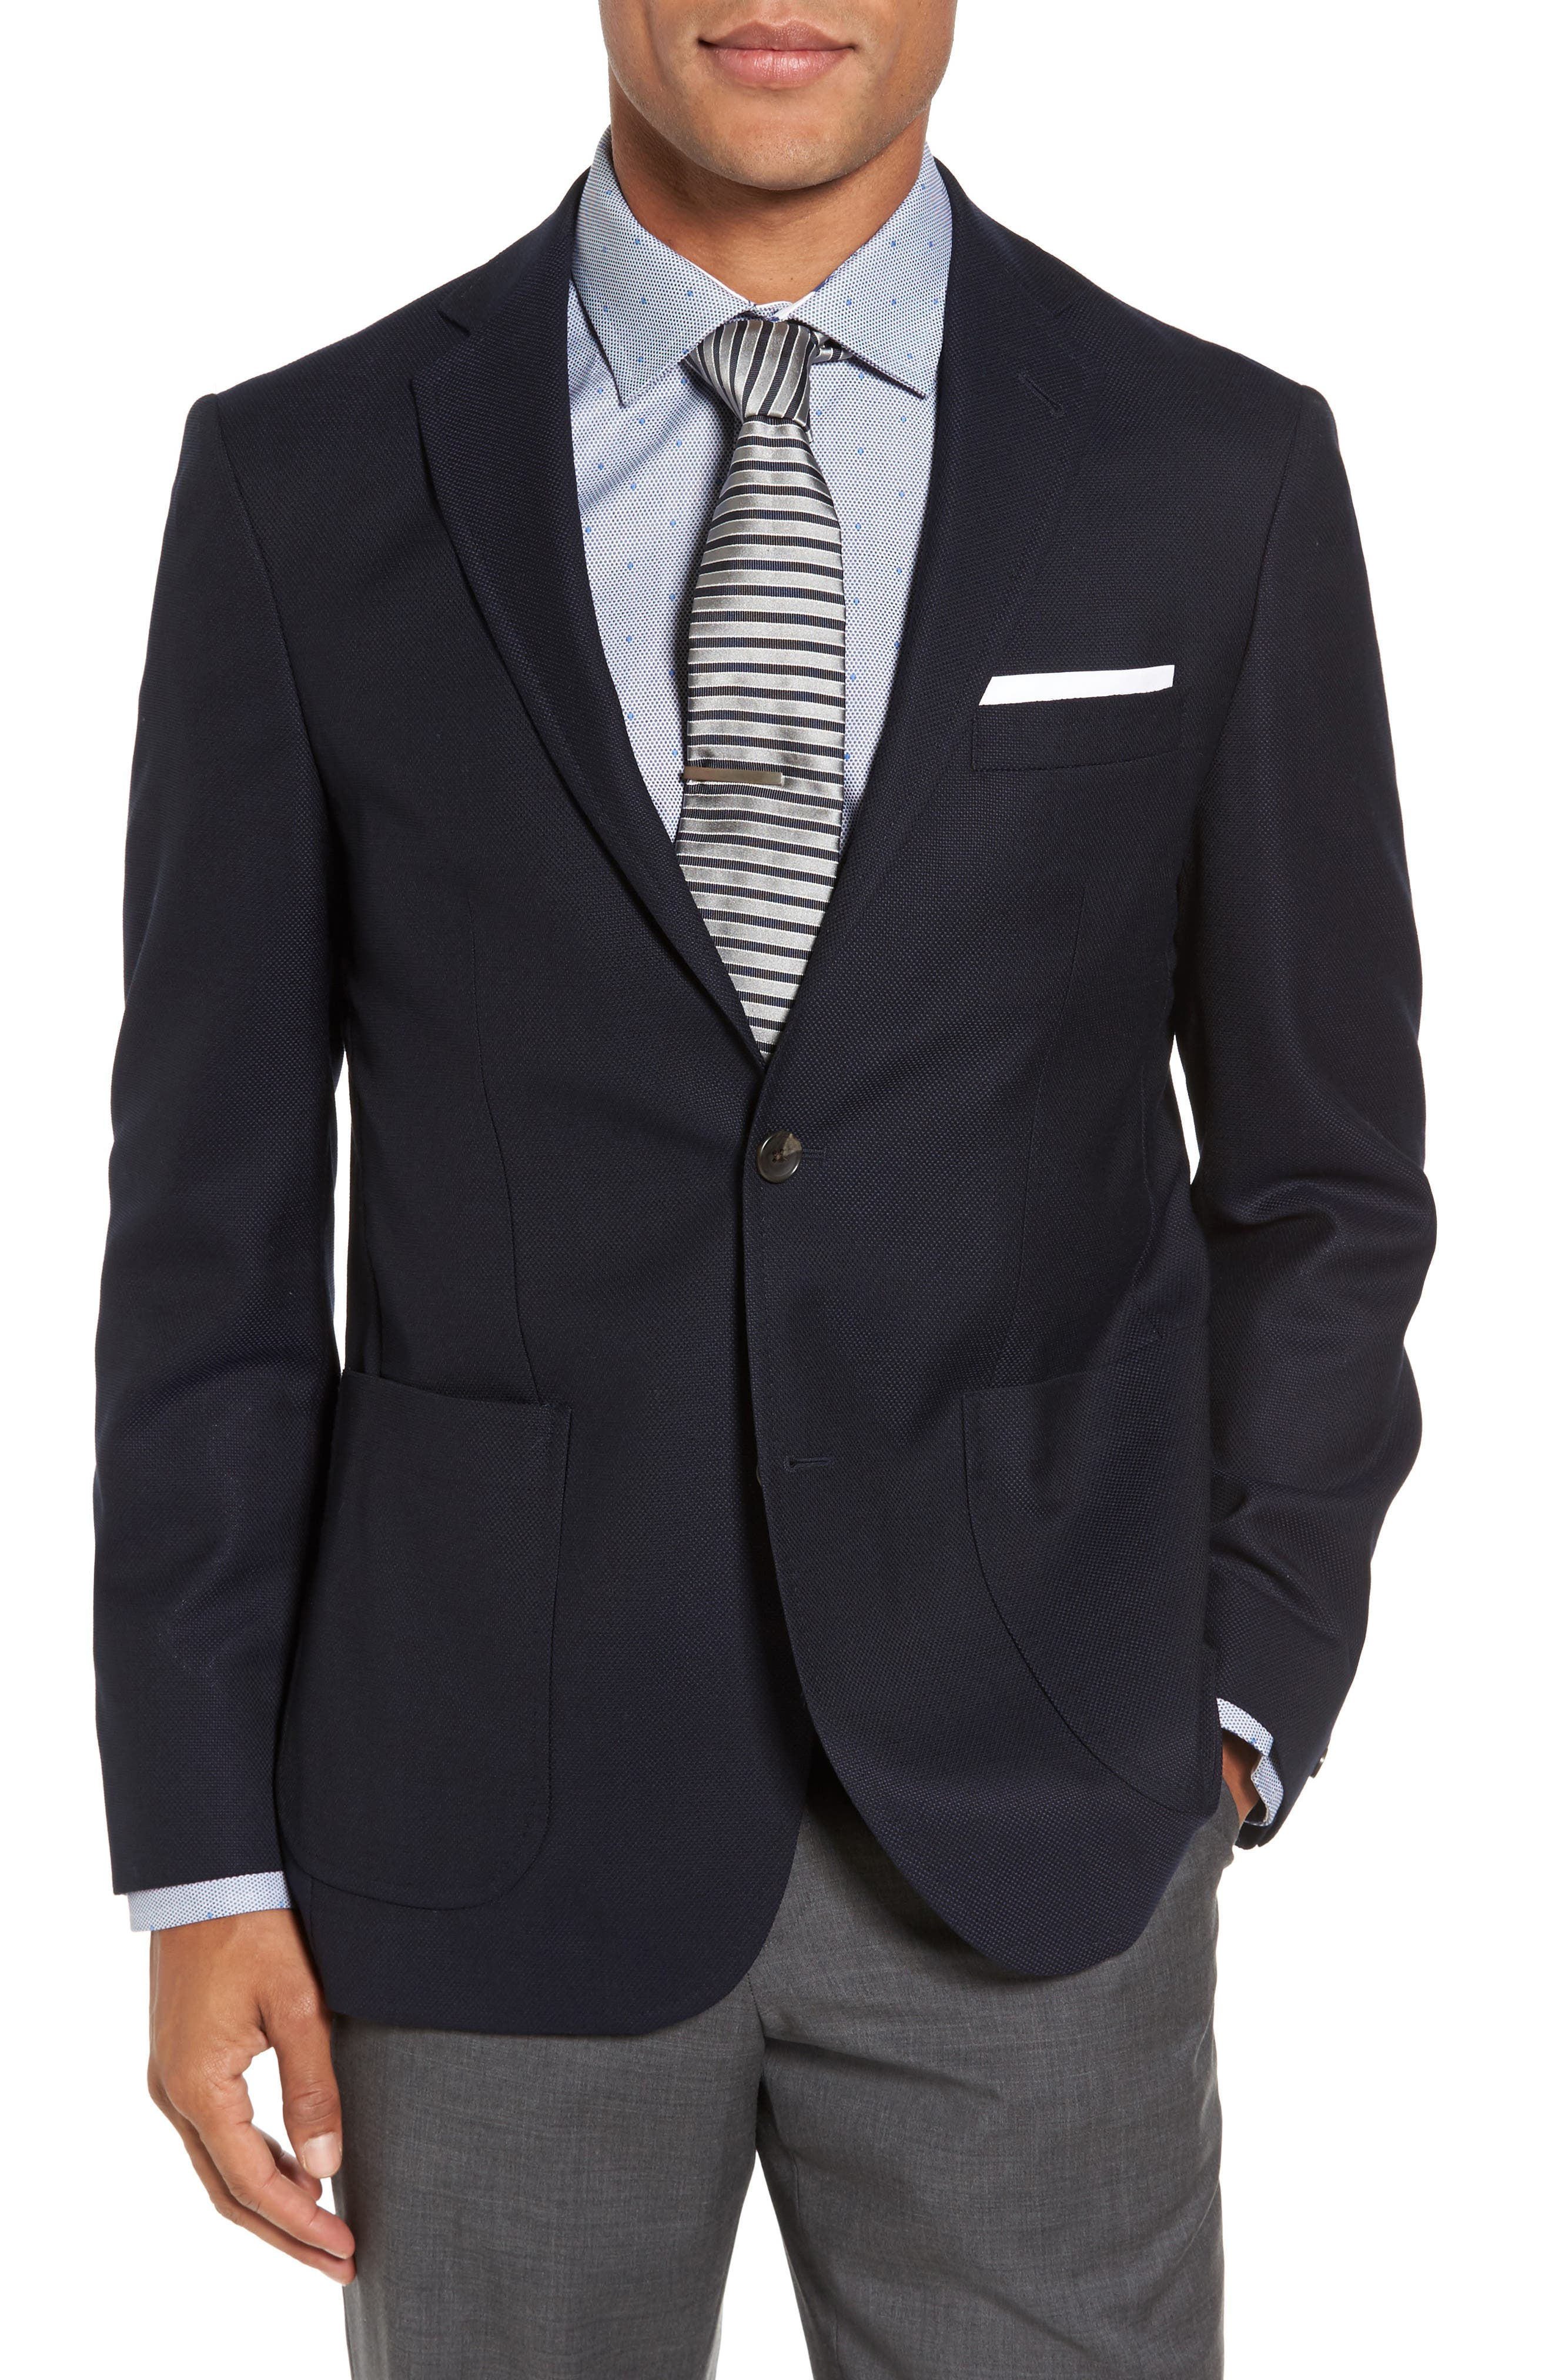 Vantage Trim Fit Wool Blazer,                         Main,                         color, Navy Hopsack